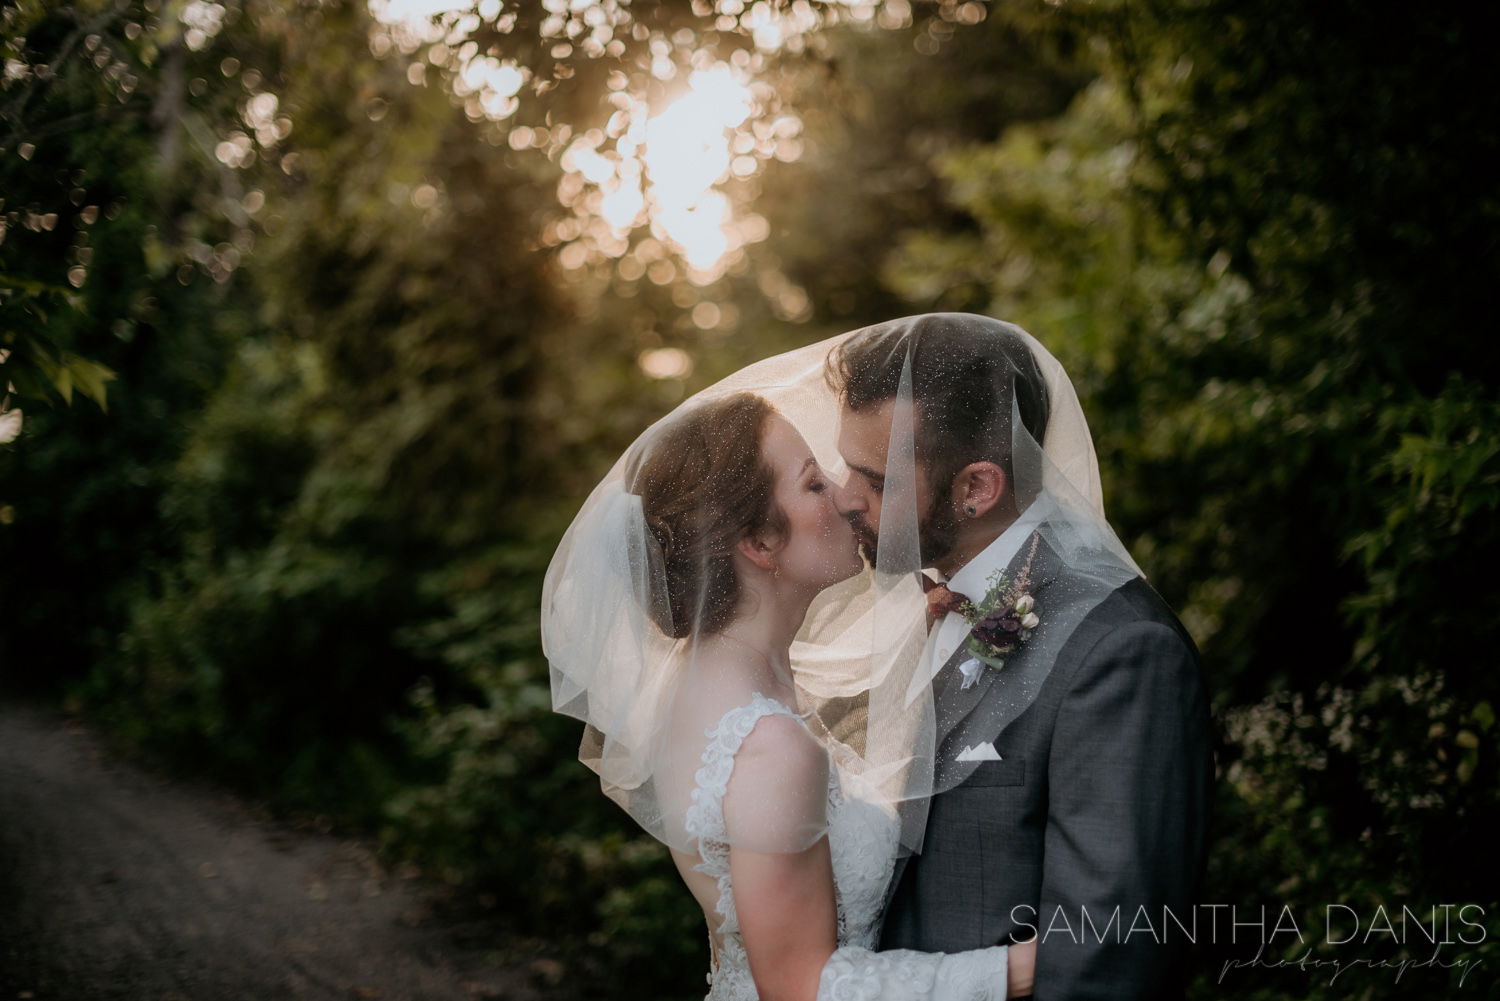 Sparkle veil covers both Ottawa Bride and Groom face to make for a dreamy romantic kiss shot under the setting sun. Ottawa Wedding Photographer.